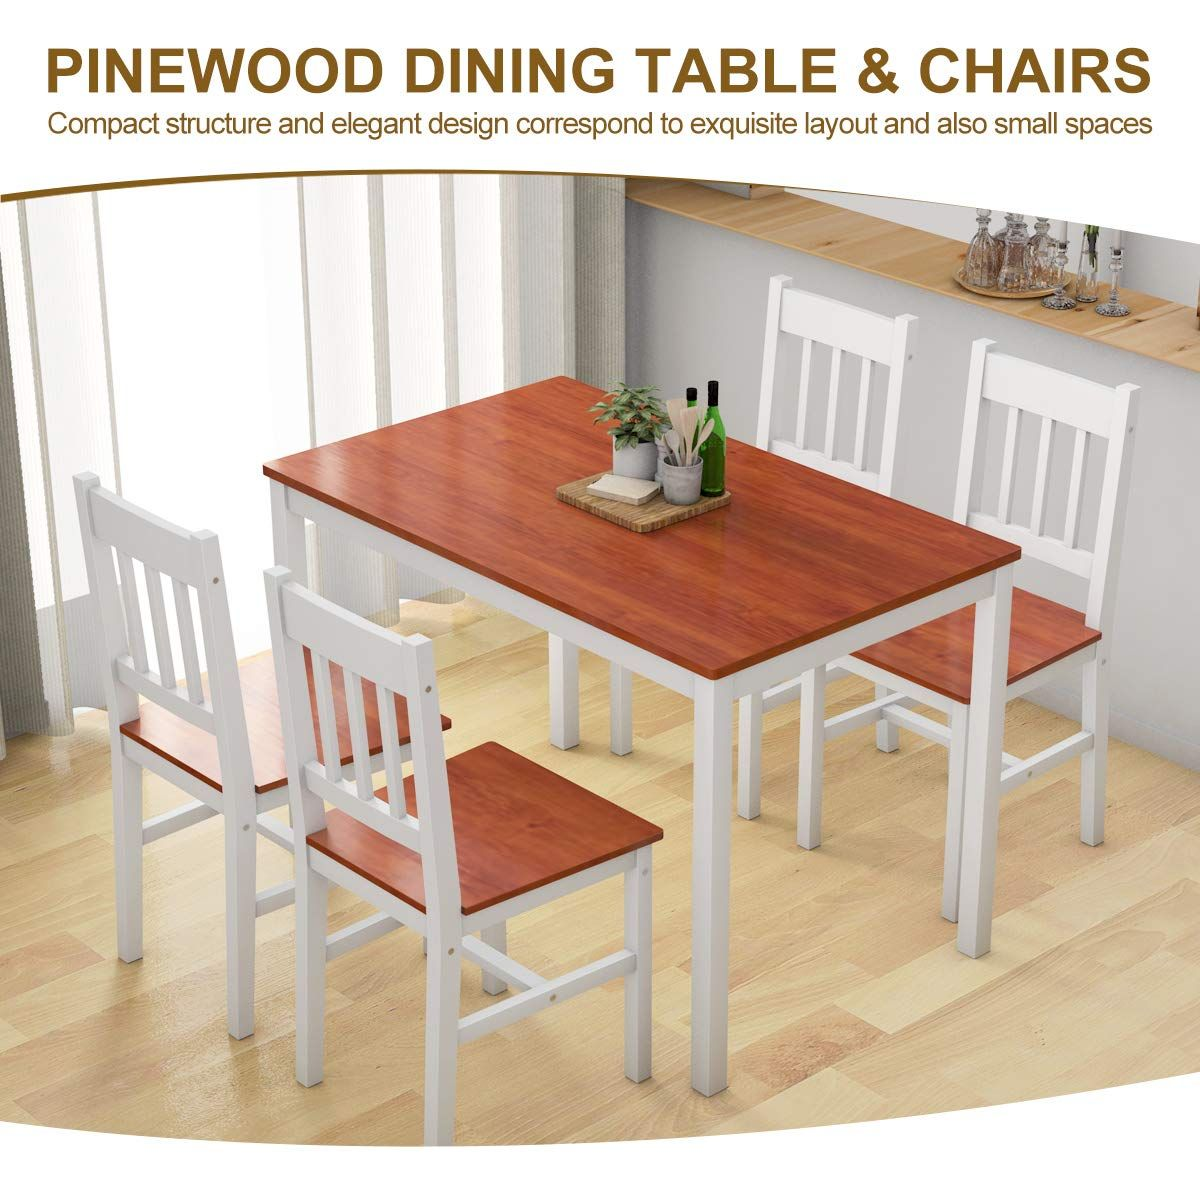 Giantex 5 Piece Wood Dining Table Set 4 Chairs Home Kitchen Breakfast Furniture Whiteandamp Walnut In 2020 Small Space Dining Set Solid Wood Dining Set Dining Table